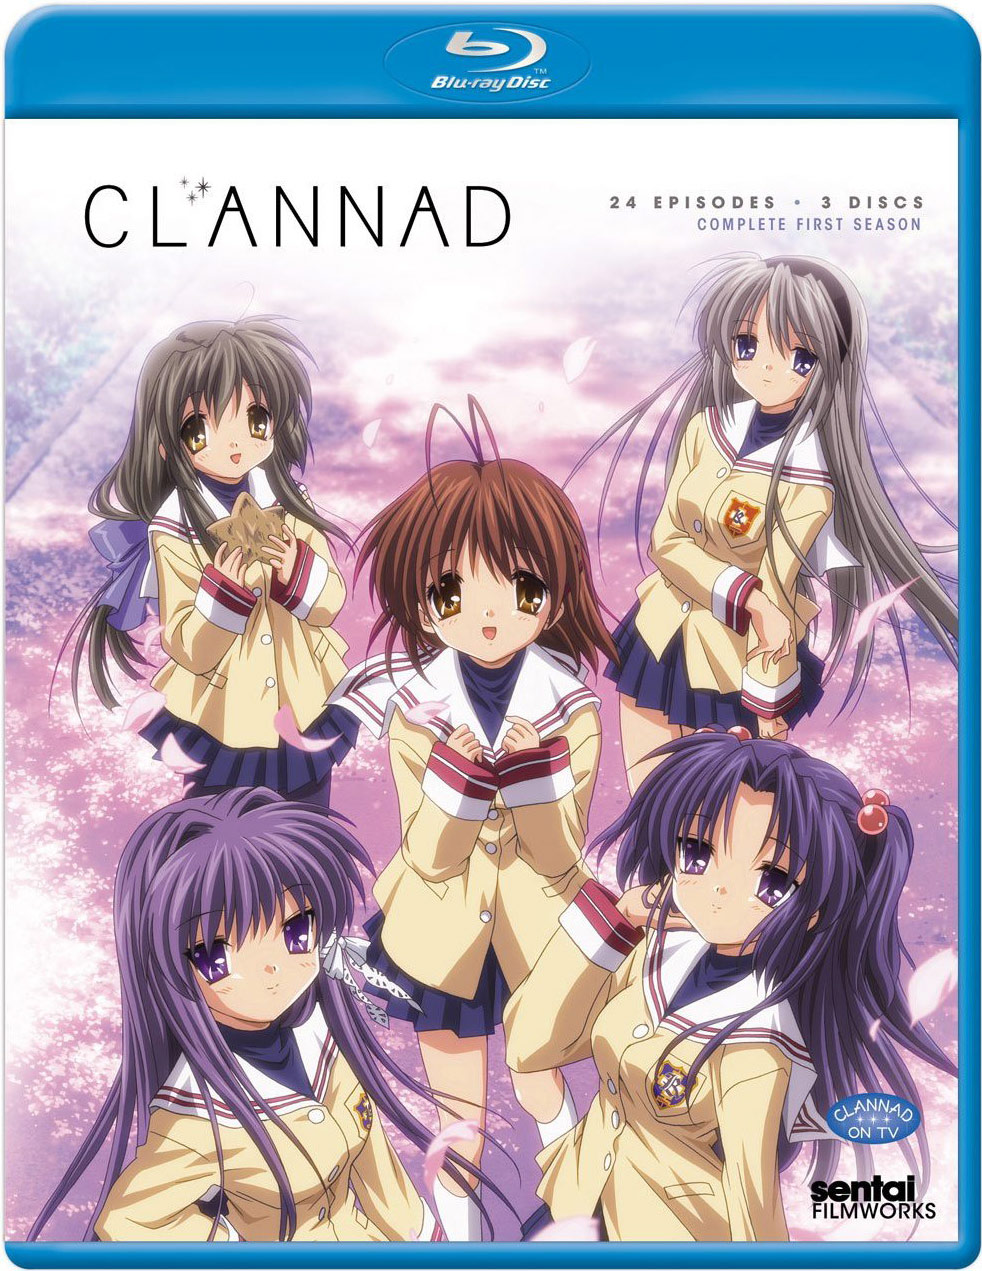 Clannad Blu-ray Complete Collection (Amazon)